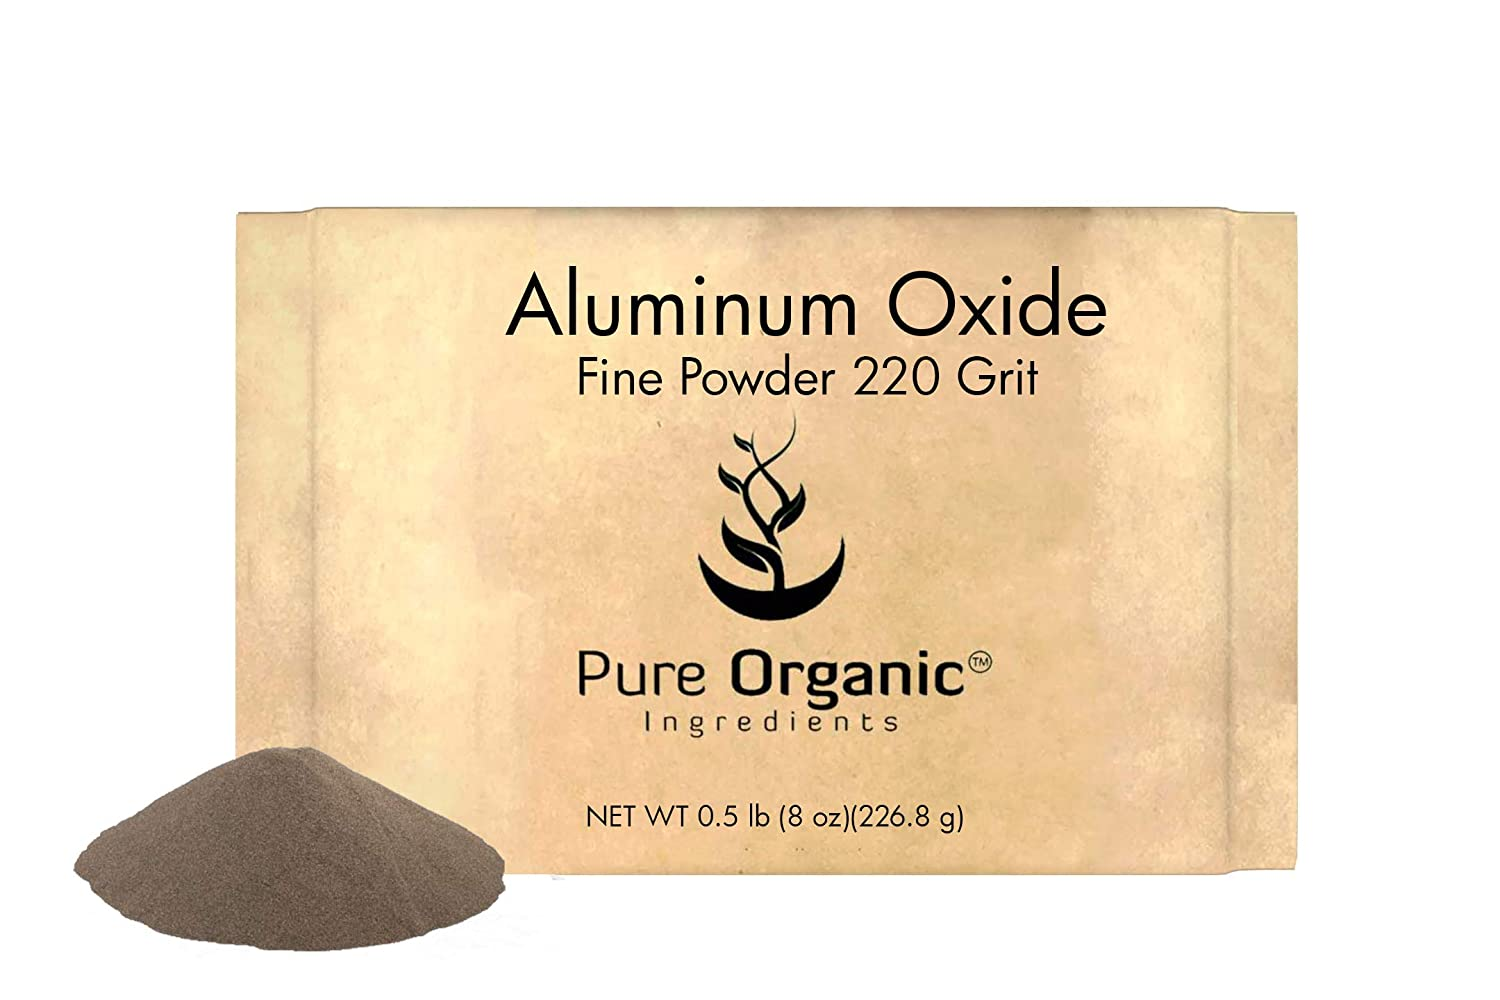 Aluminum Oxide (8 oz) by Pure Organic Ingredients, 220 Grit Fine Powder, Used in Ceramics for Etching, Polishing, and Sharpening Glass, Metal, Stone, Wood